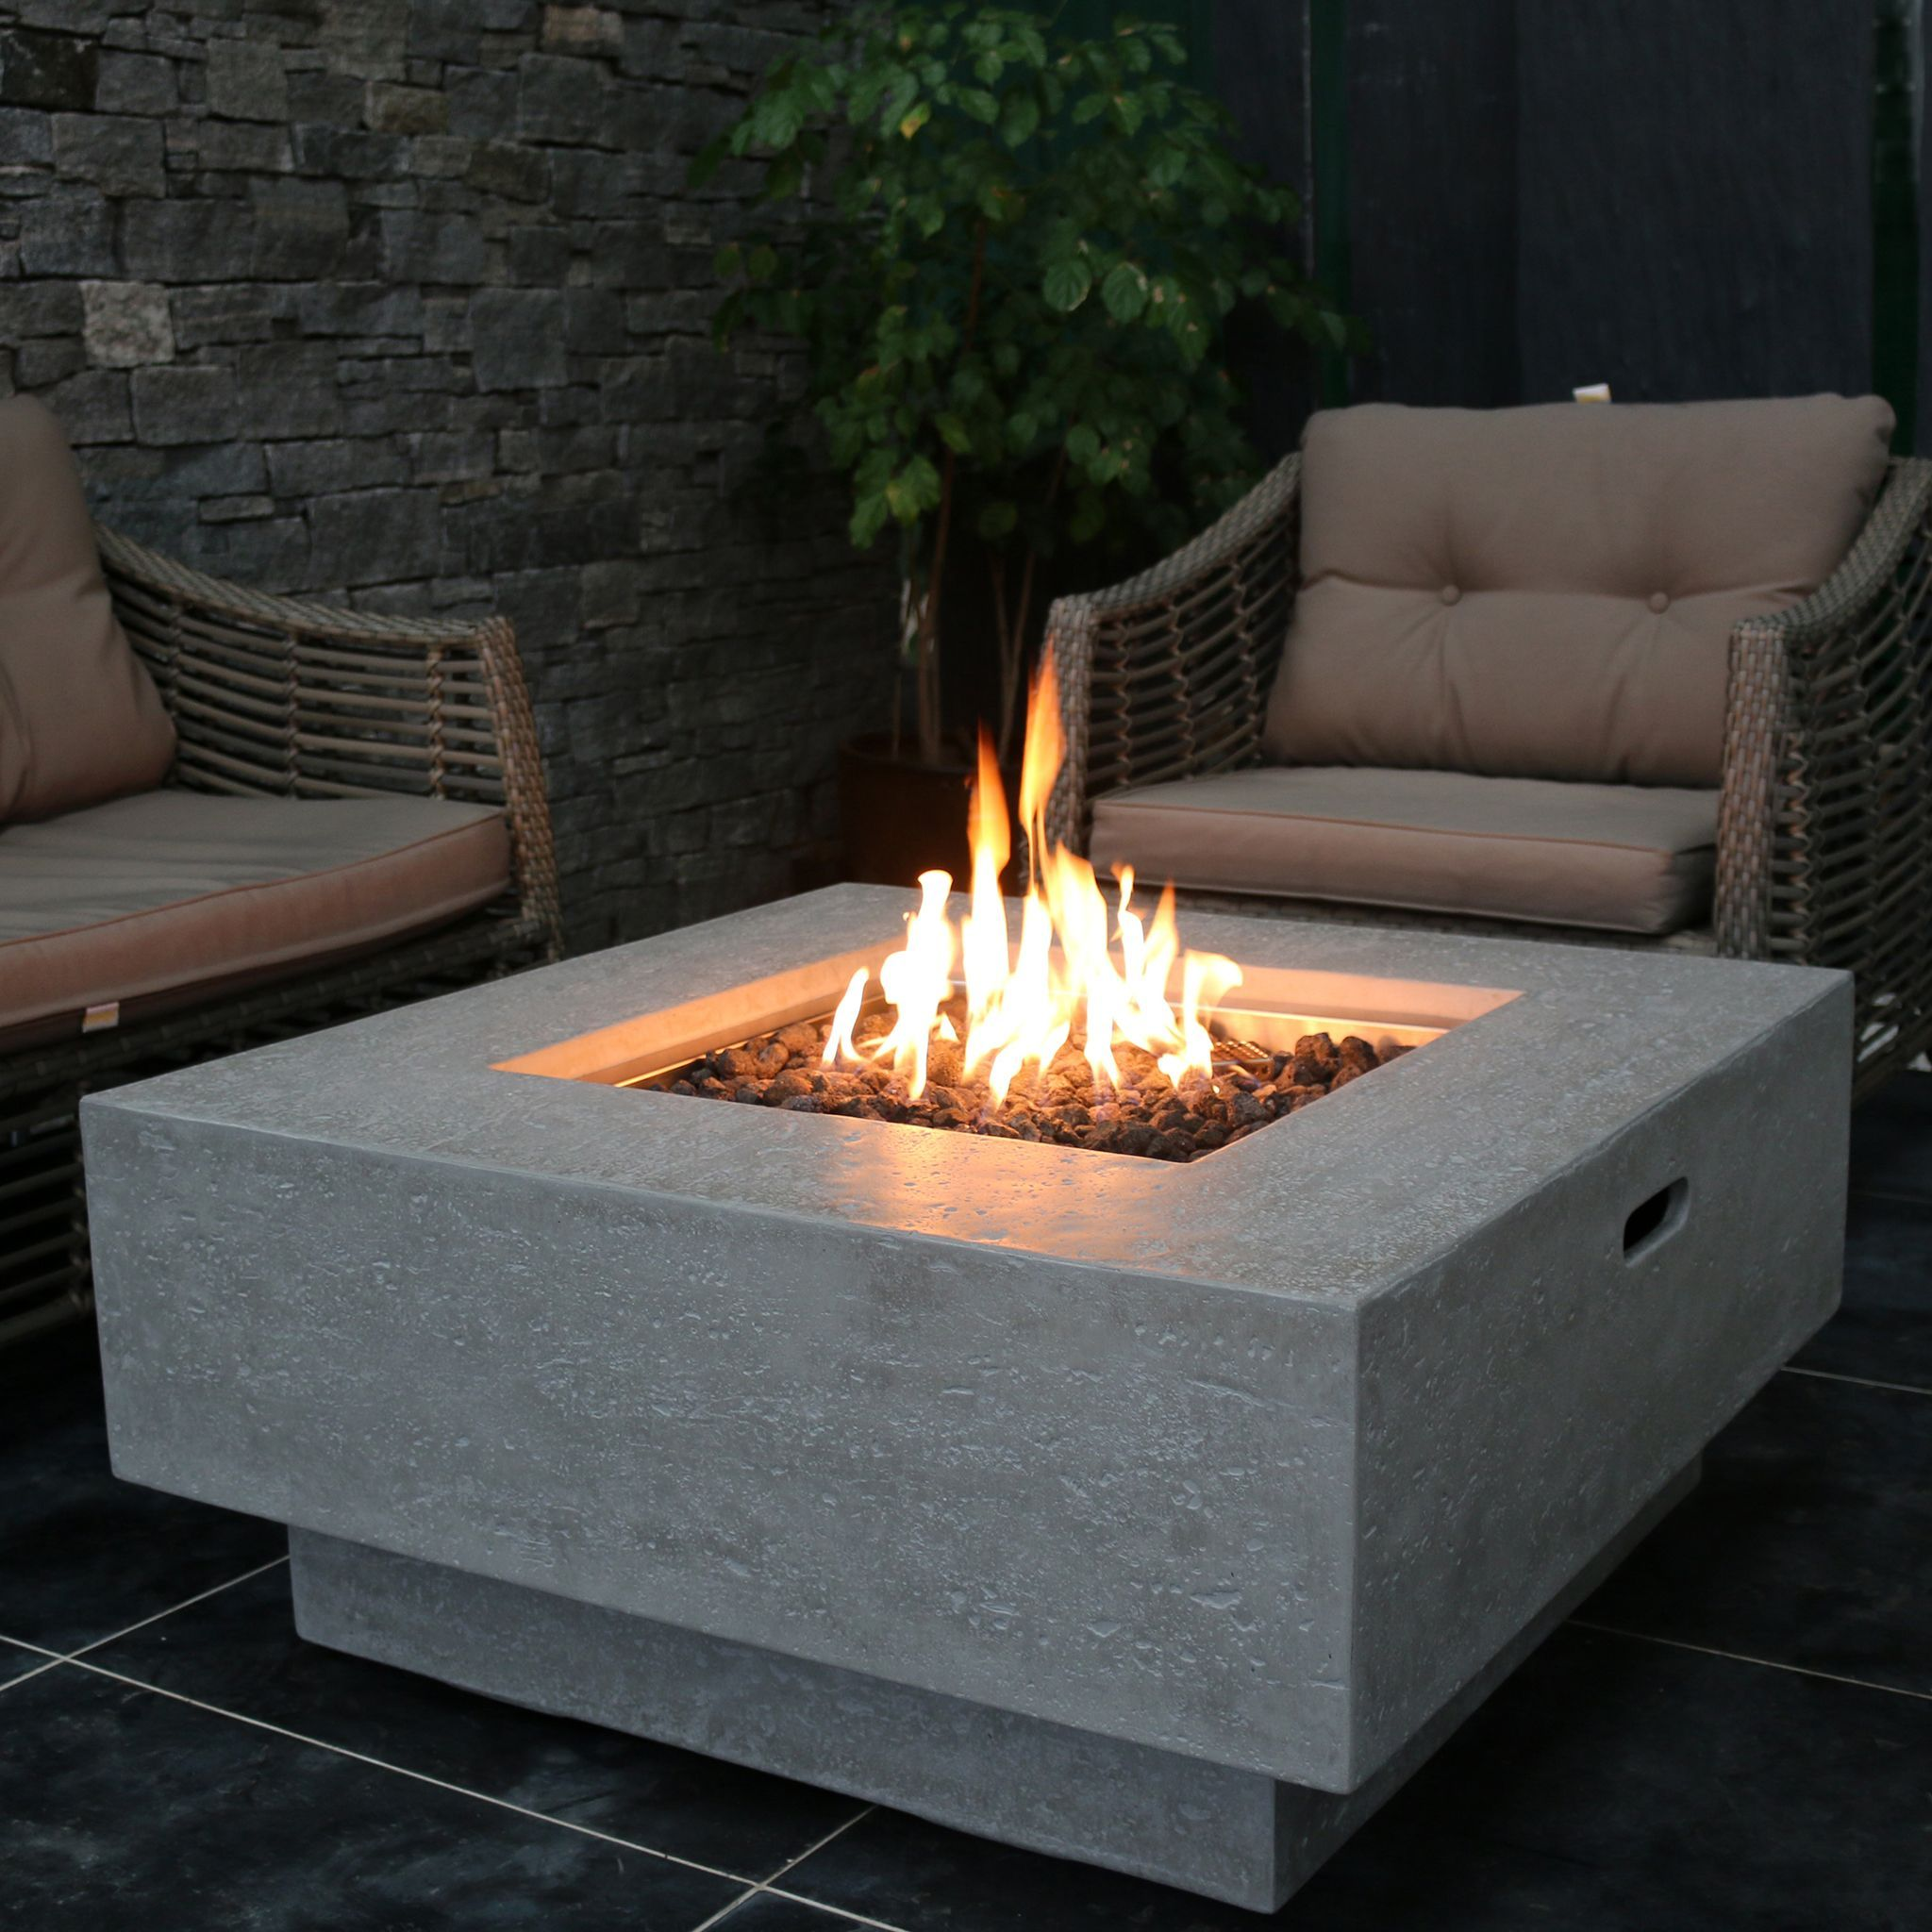 Manhattan Concrete Fire Table   Outdoor fire pit table, Outdoor ...